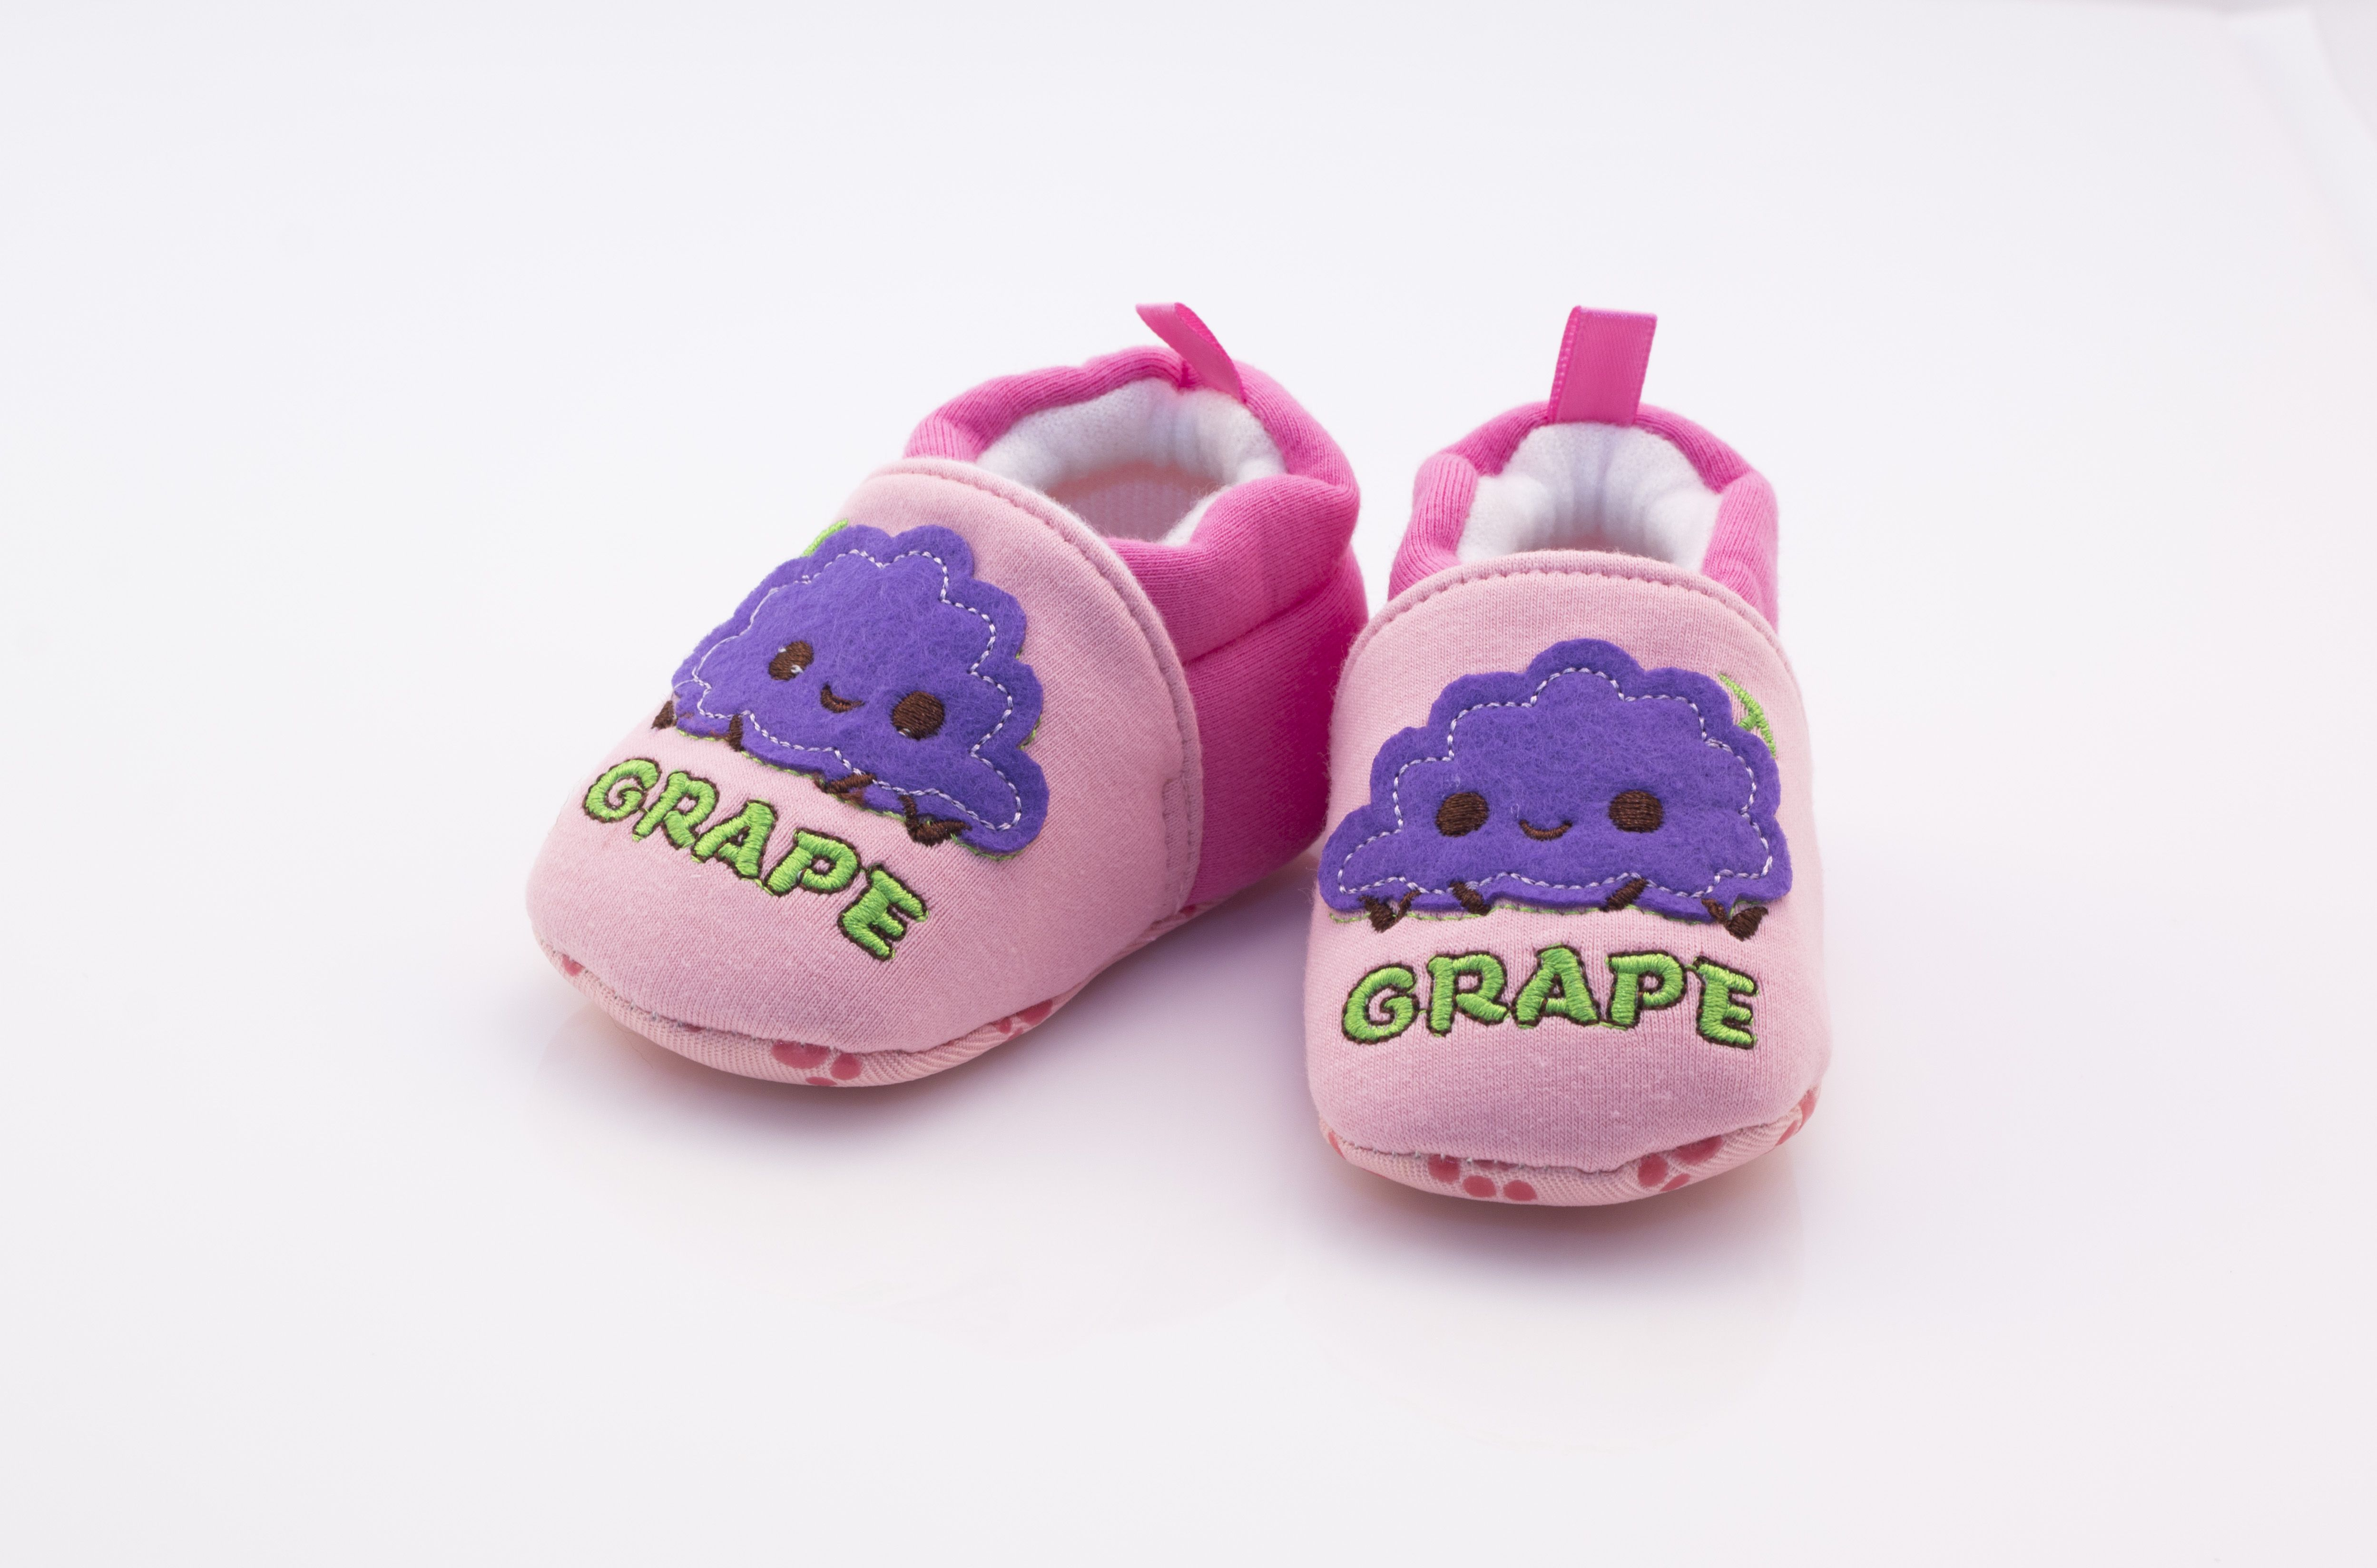 Adorable Crib Shoes or baby first walkers Cotton Fleece to keep